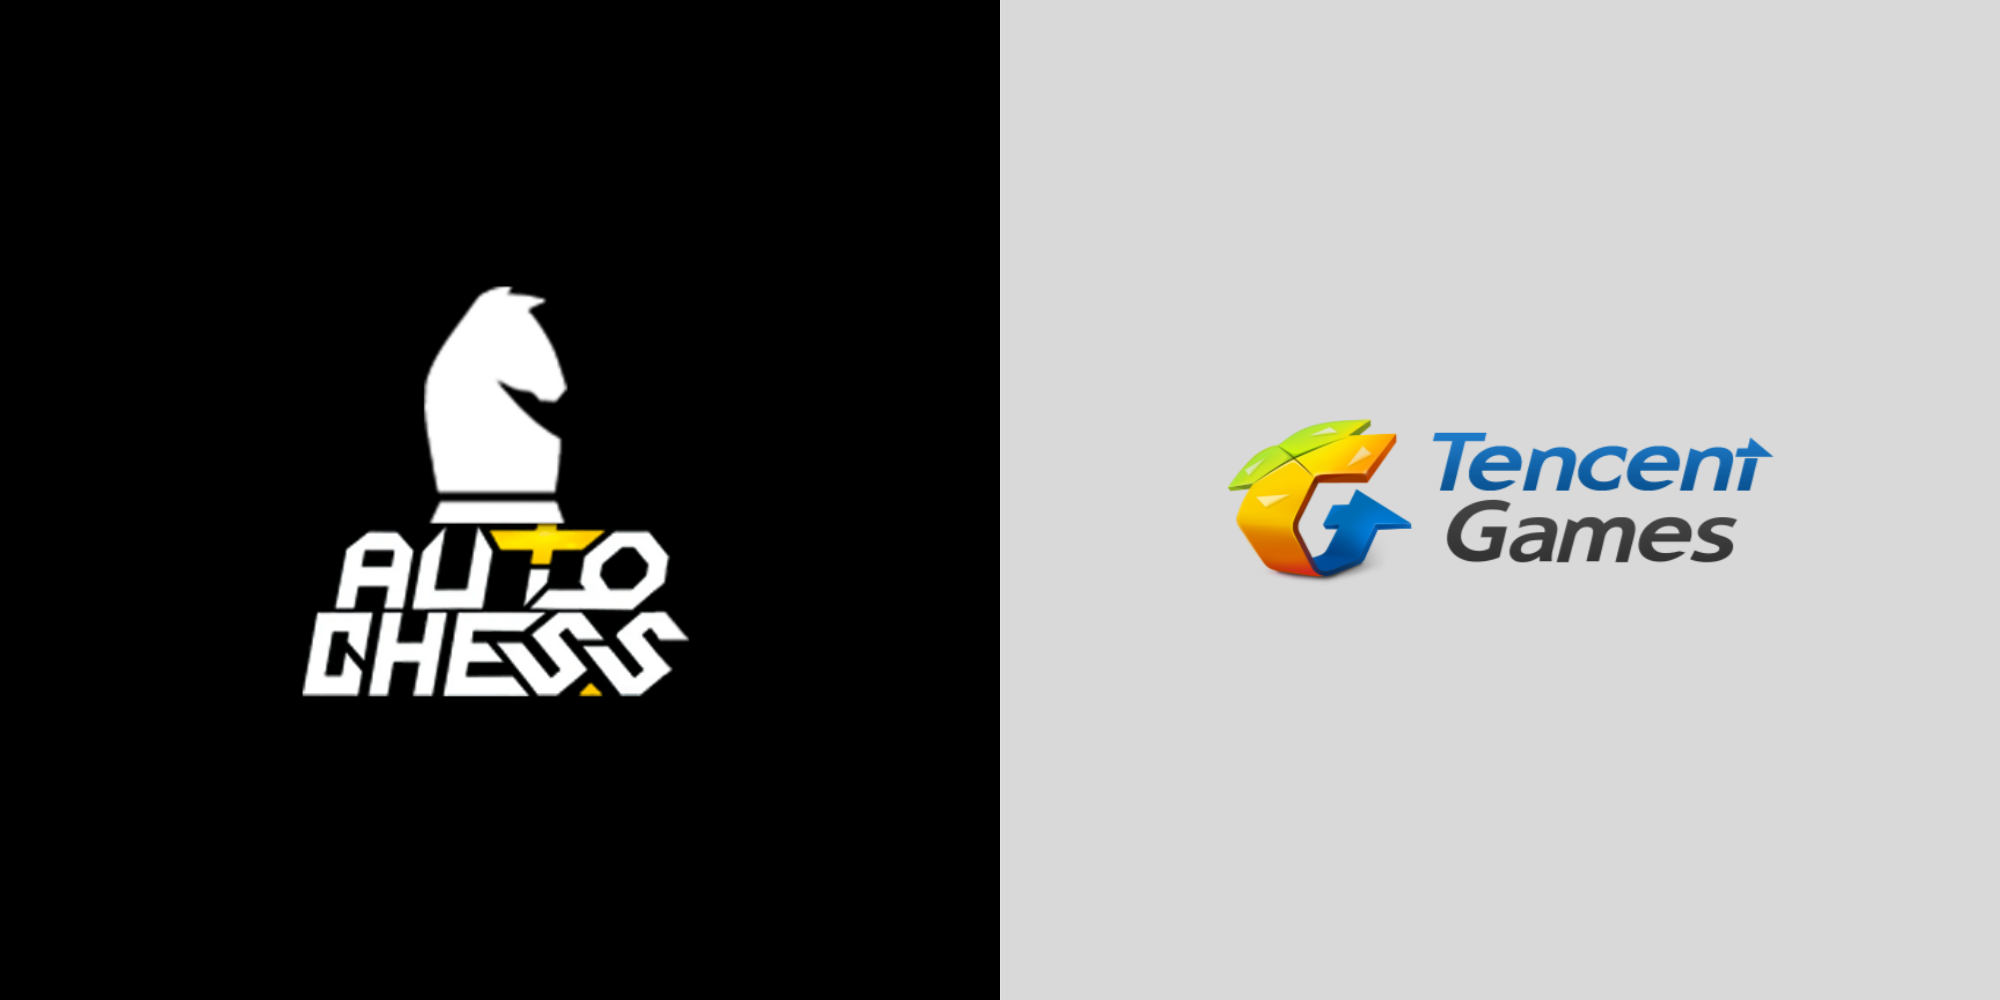 Drodo and Tencent Team Up to Take on Teamfight Tactics